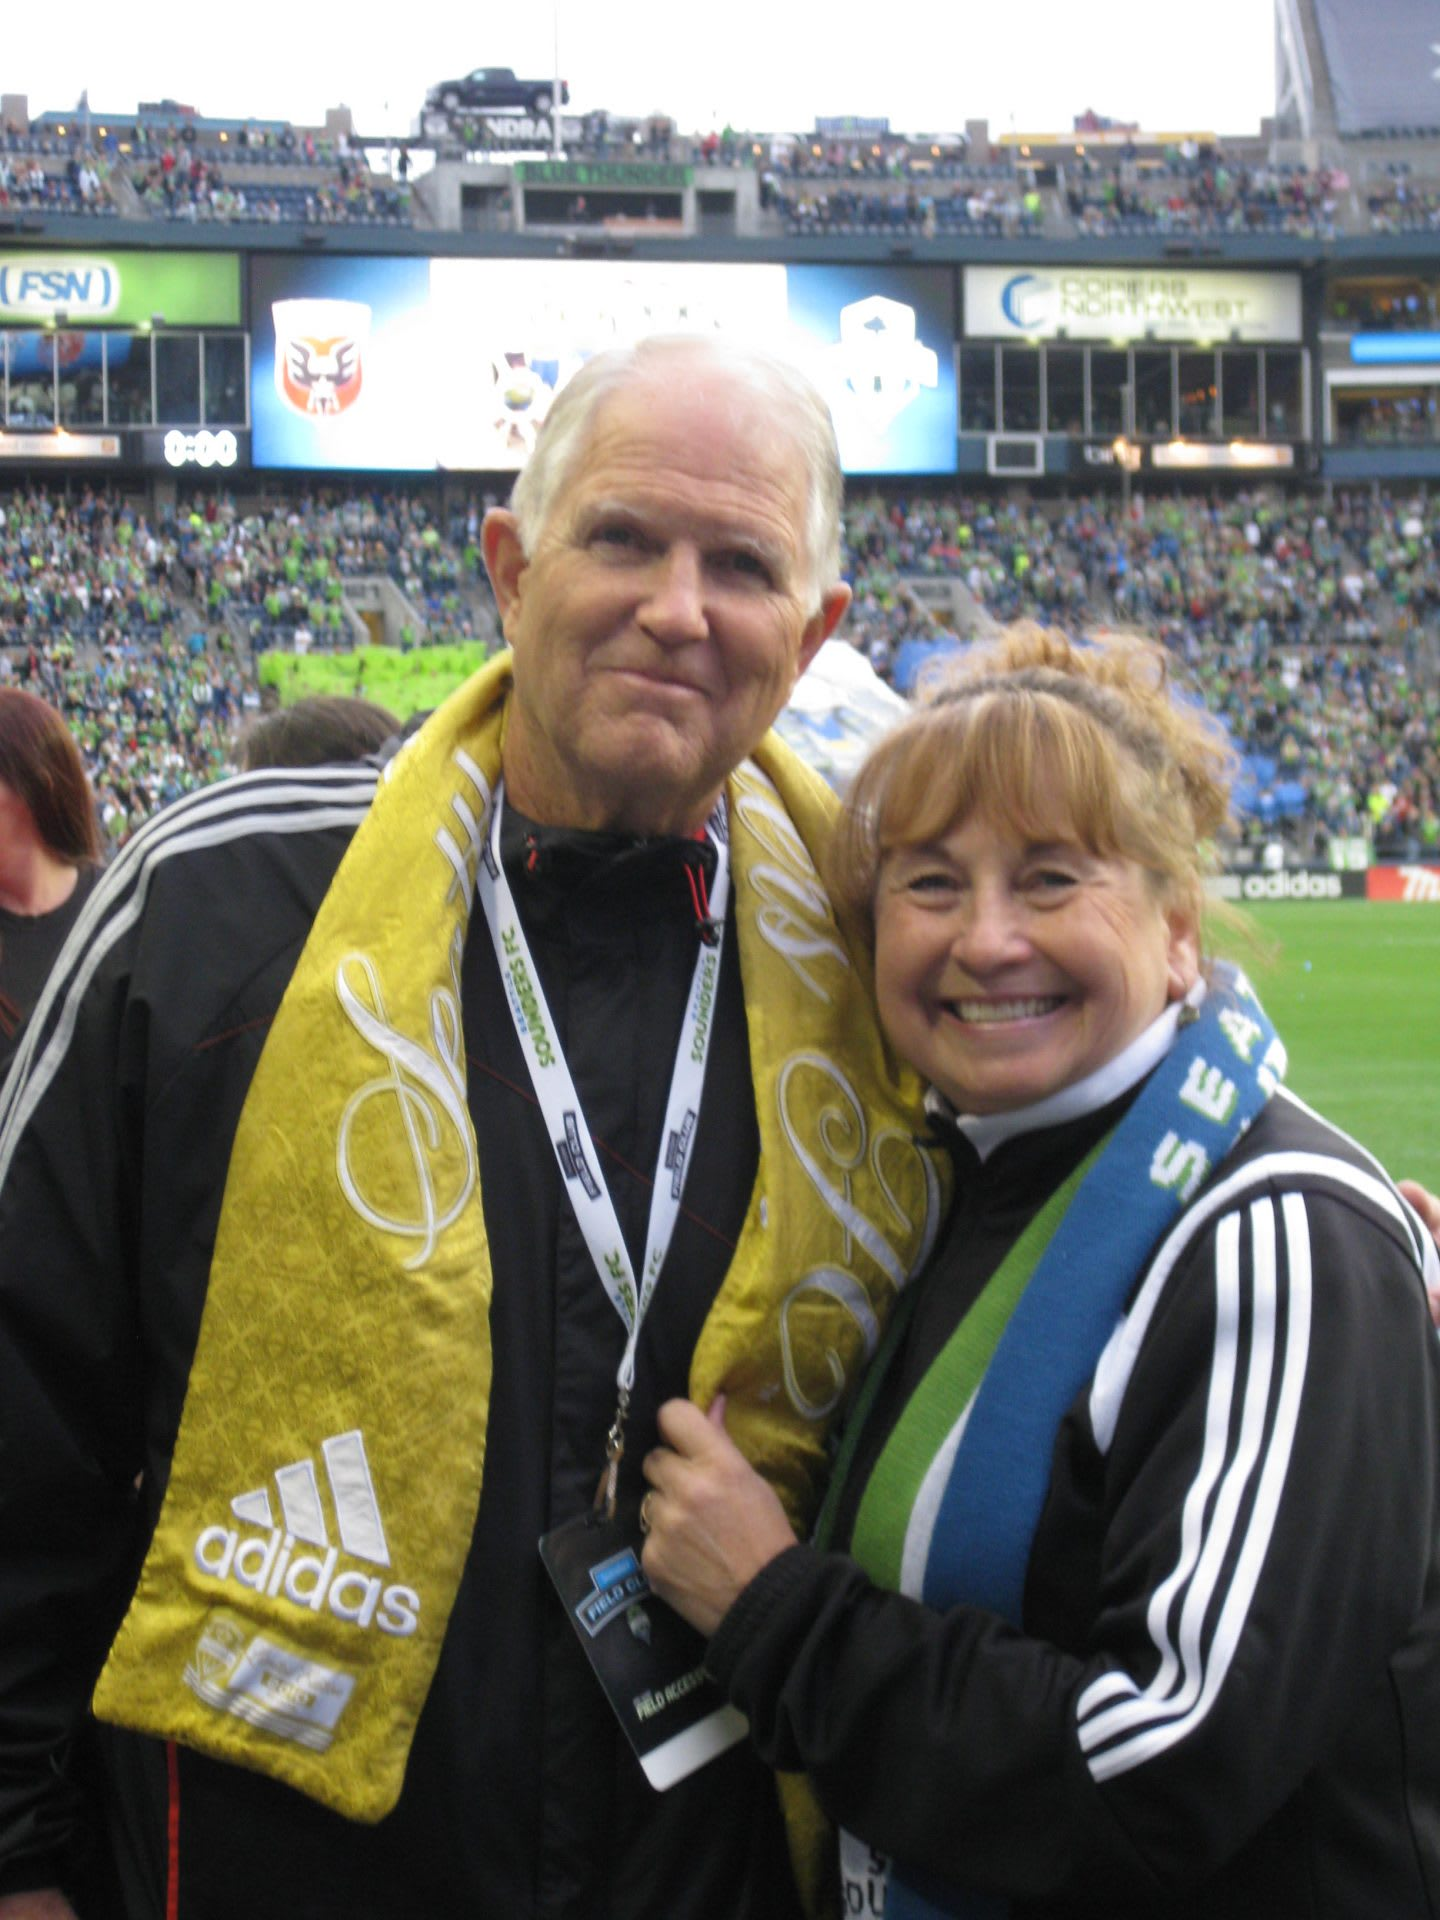 Elderly couple smiling at soccer game wearing adidas product, football, fans, game, sports, spectator